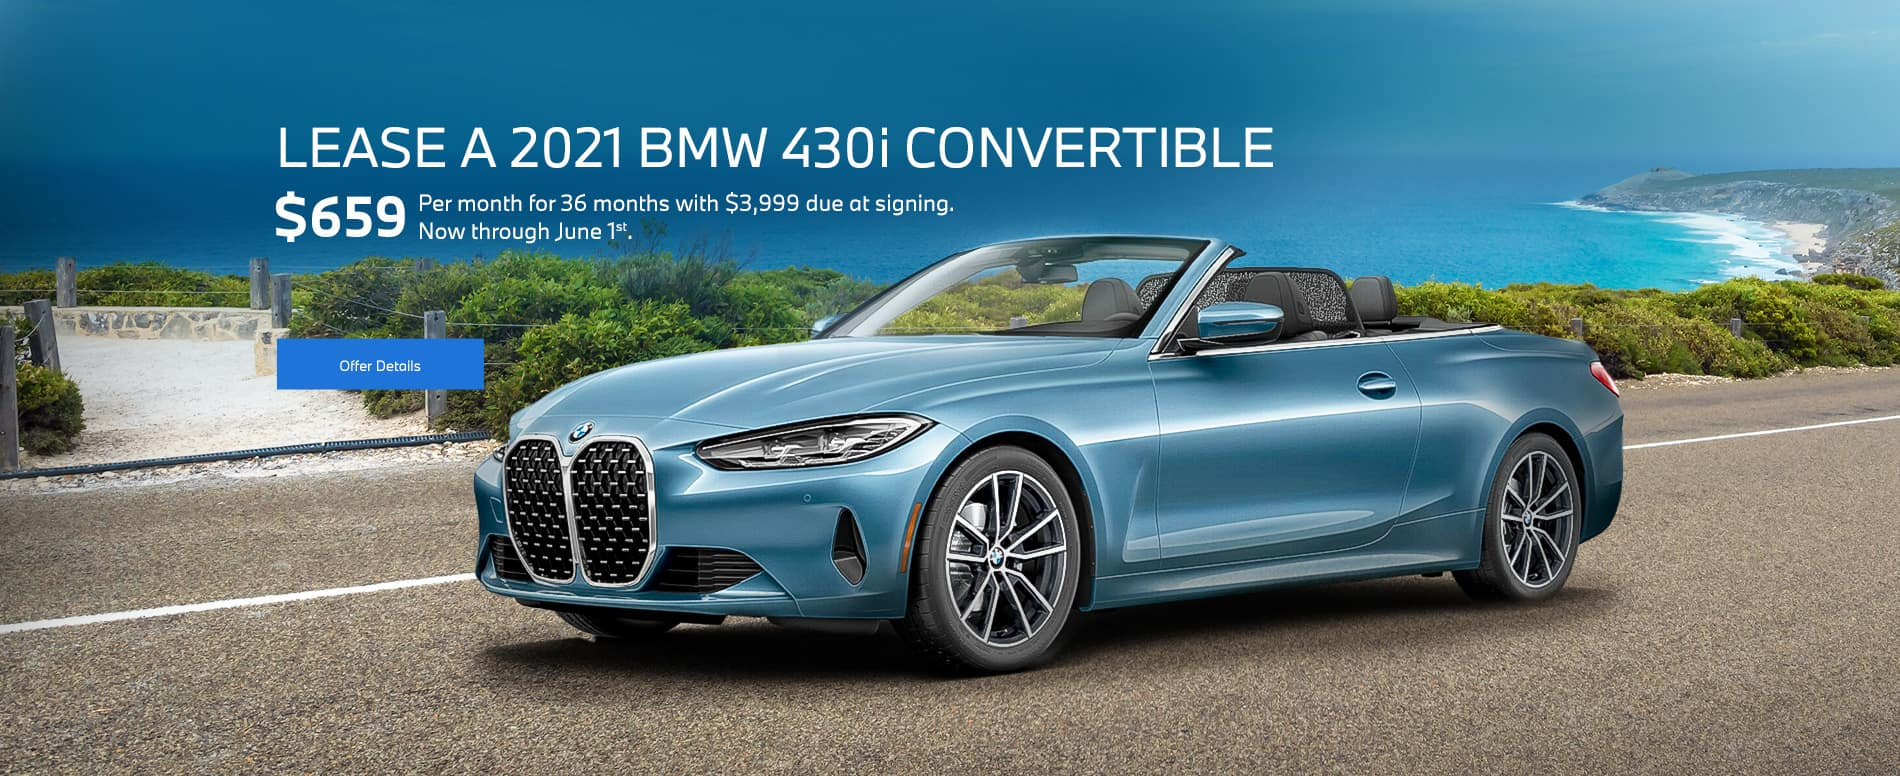 A new blue 2021 BMW 430i convertible leasing for $659/month for 36 months with $3,999 due at signing